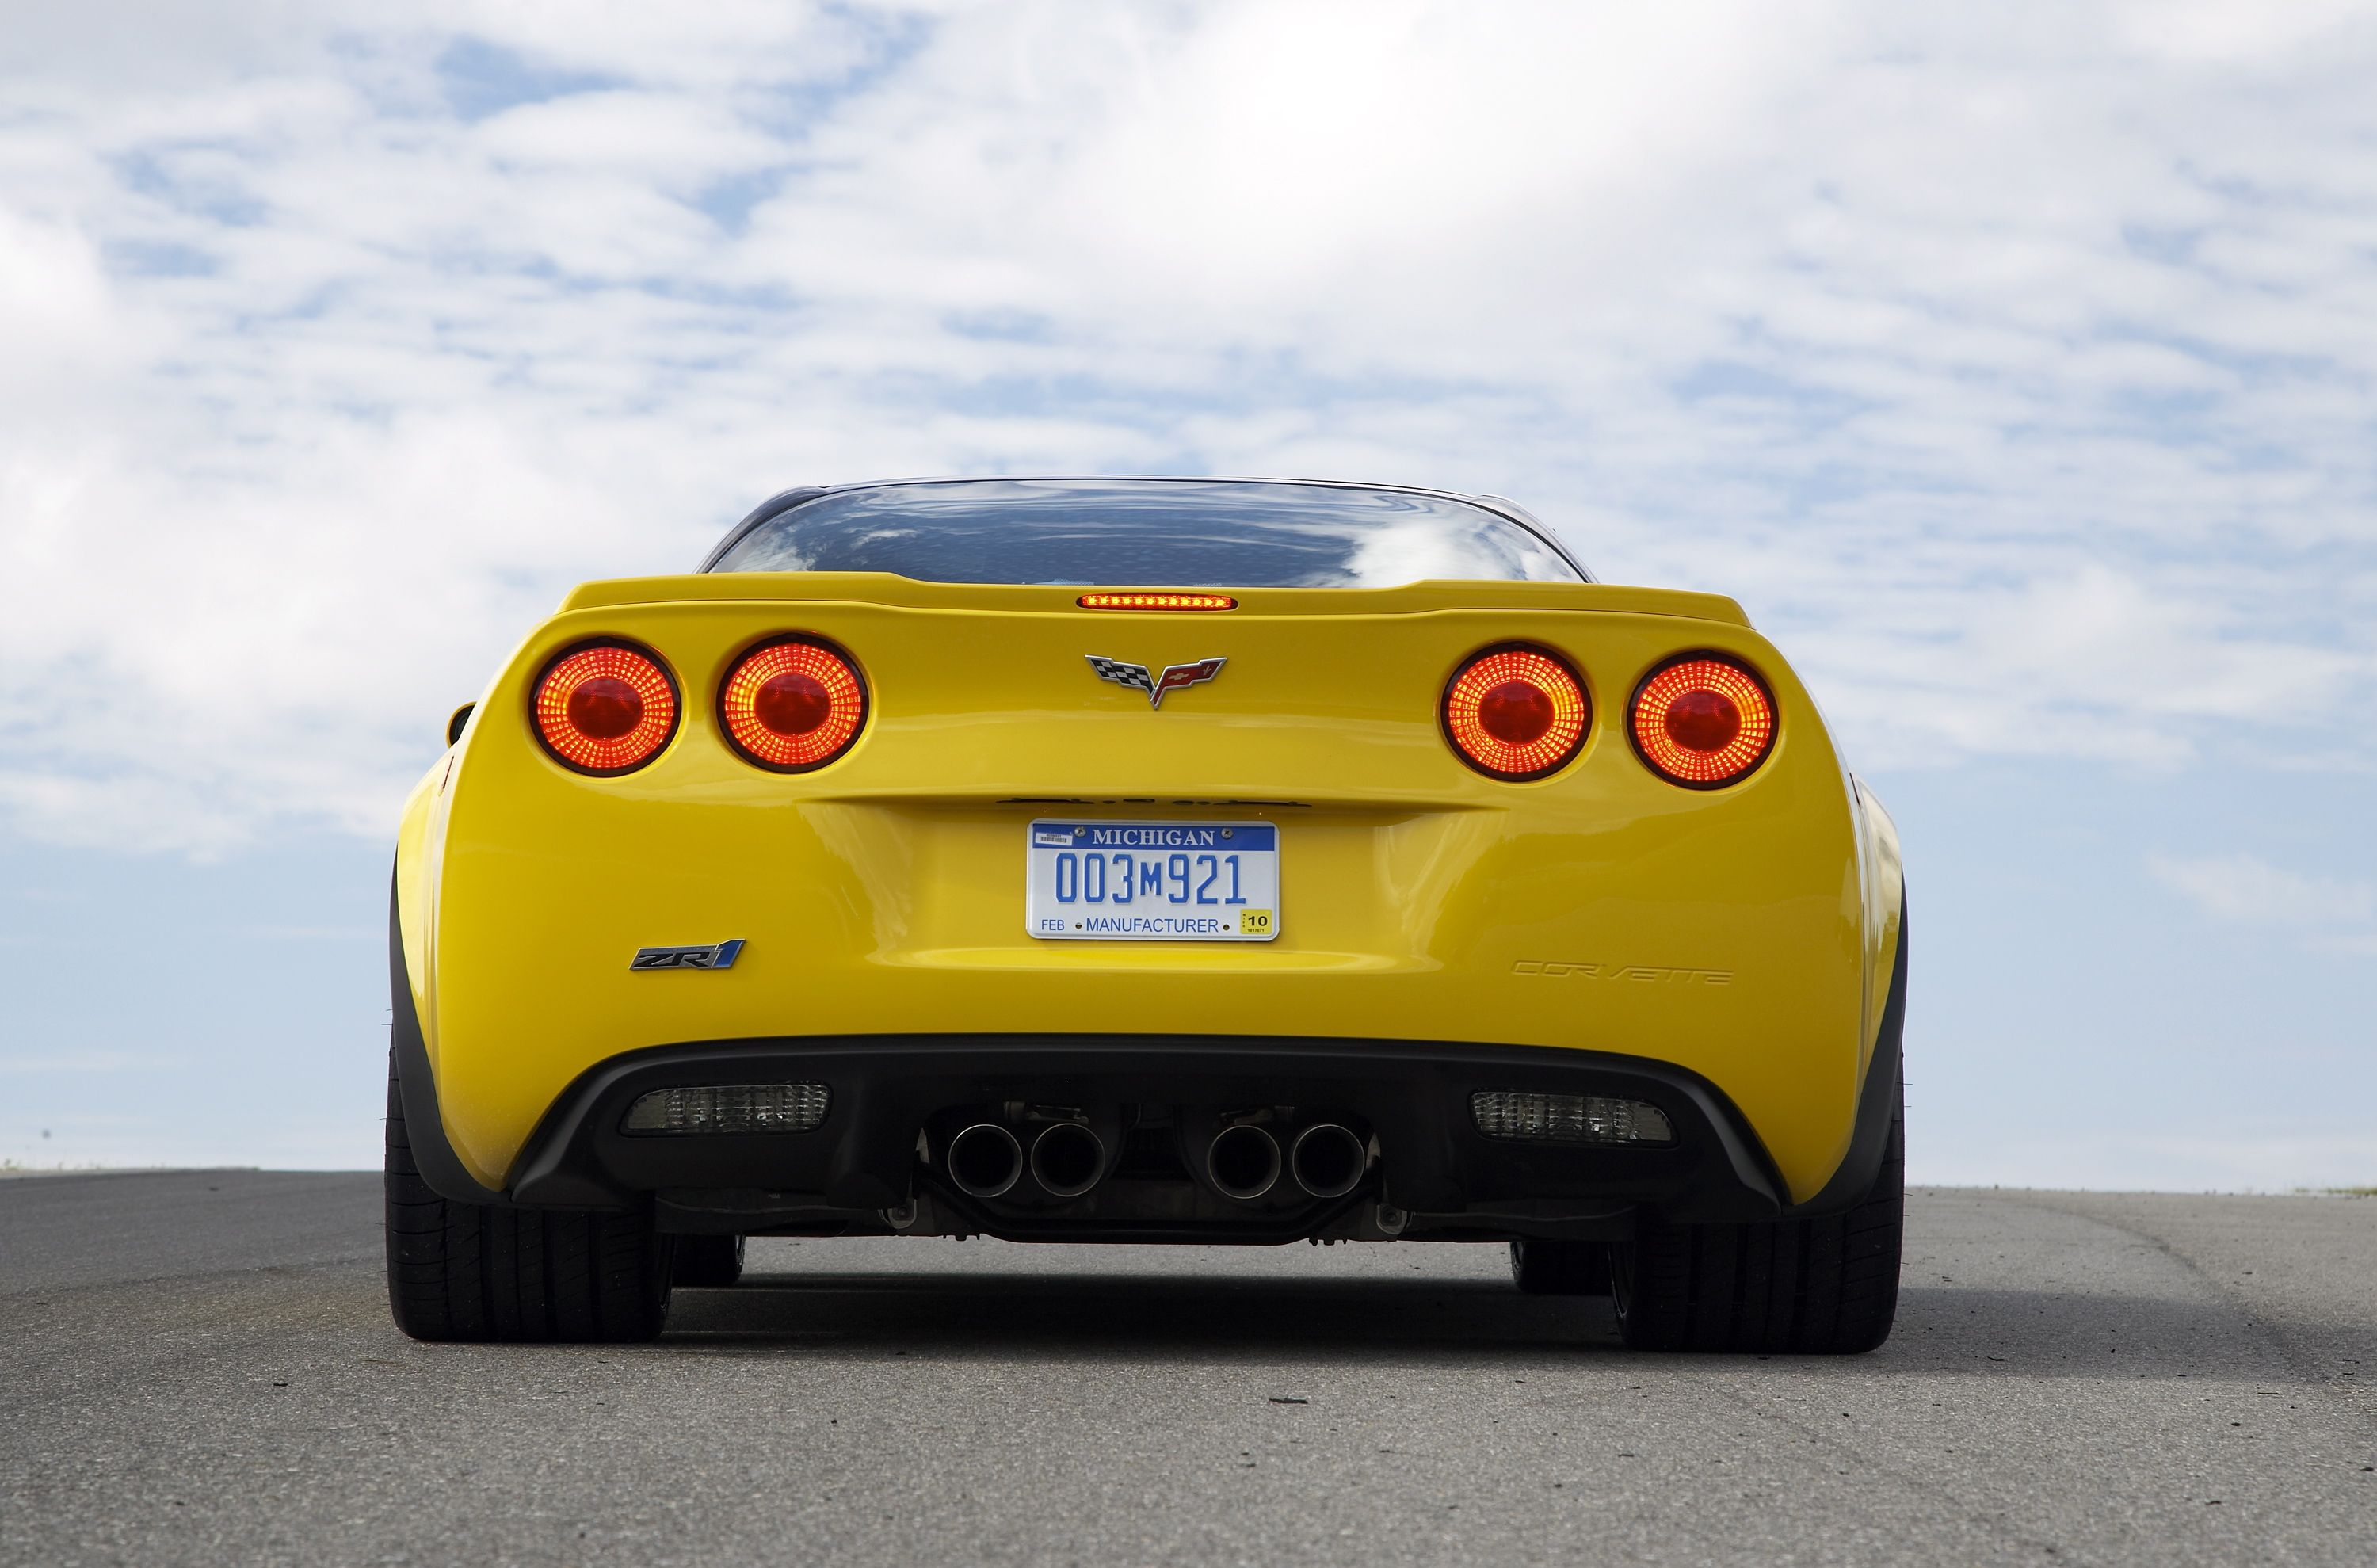 2009 Corvette Zr1 Corvette Zr1 Hot Rods Cars Muscle